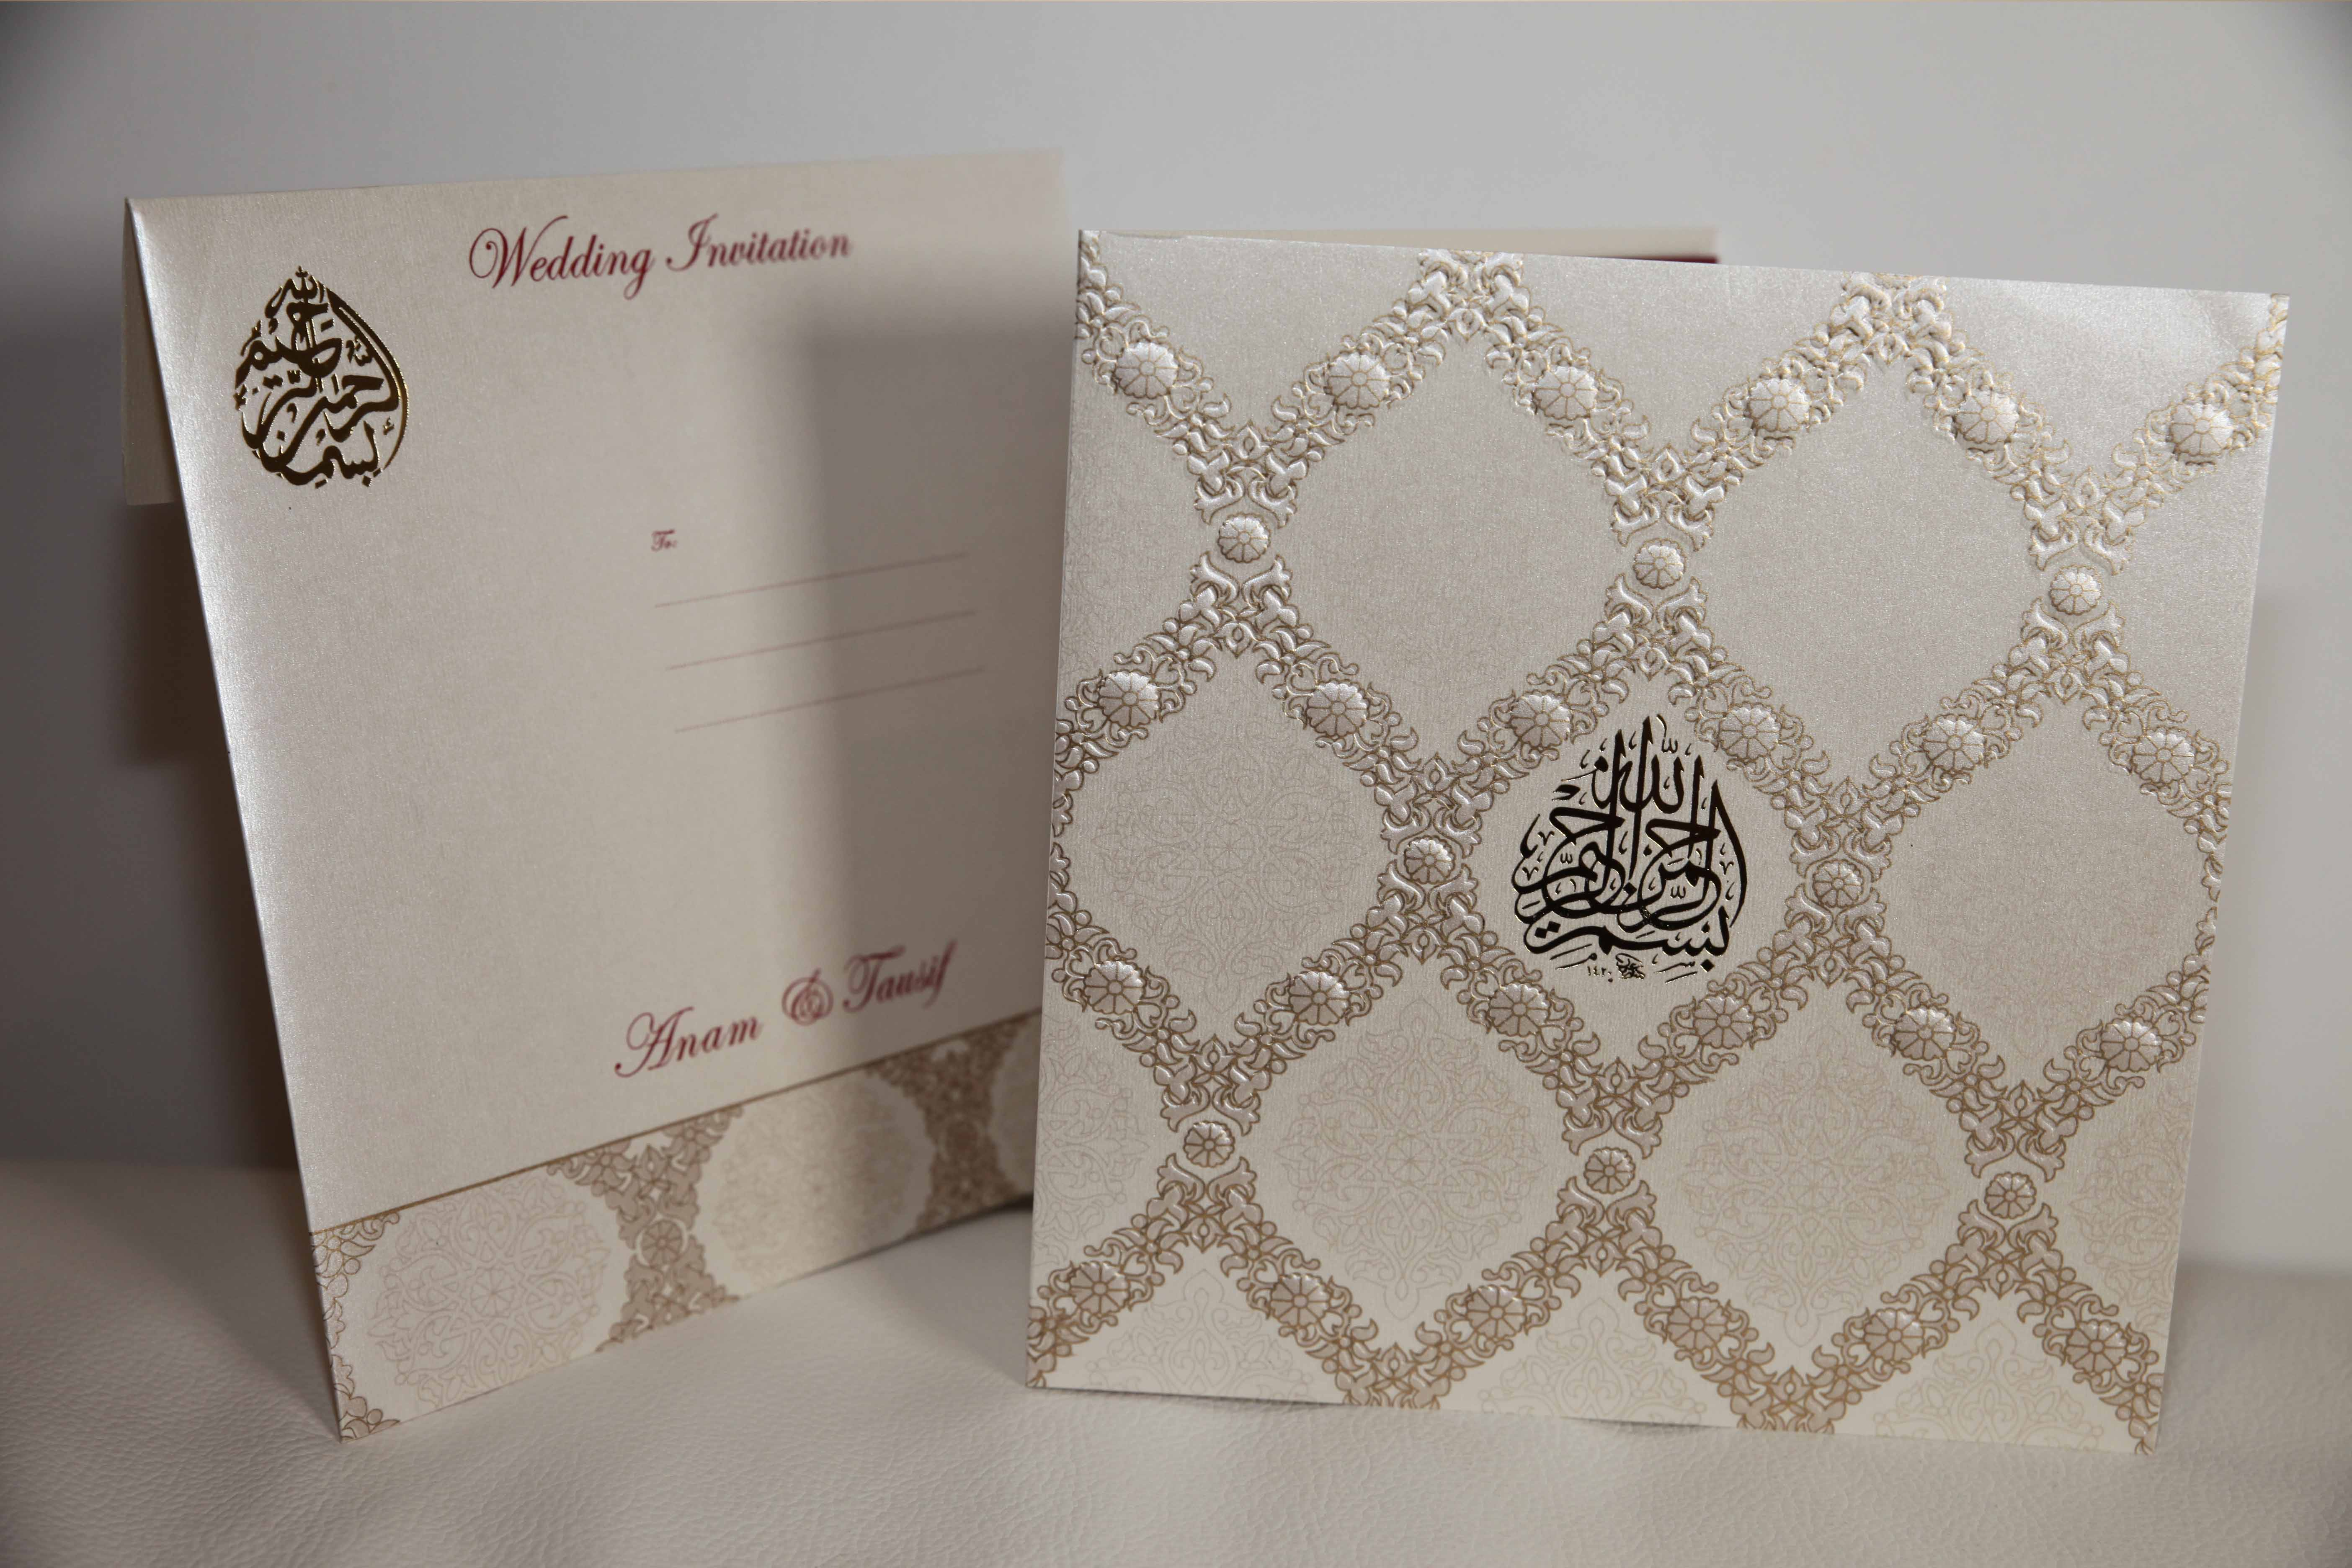 Modern Indian Wedding Invitations Uk: Muslim Wedding Cards Is A Well Known Brand In The UK